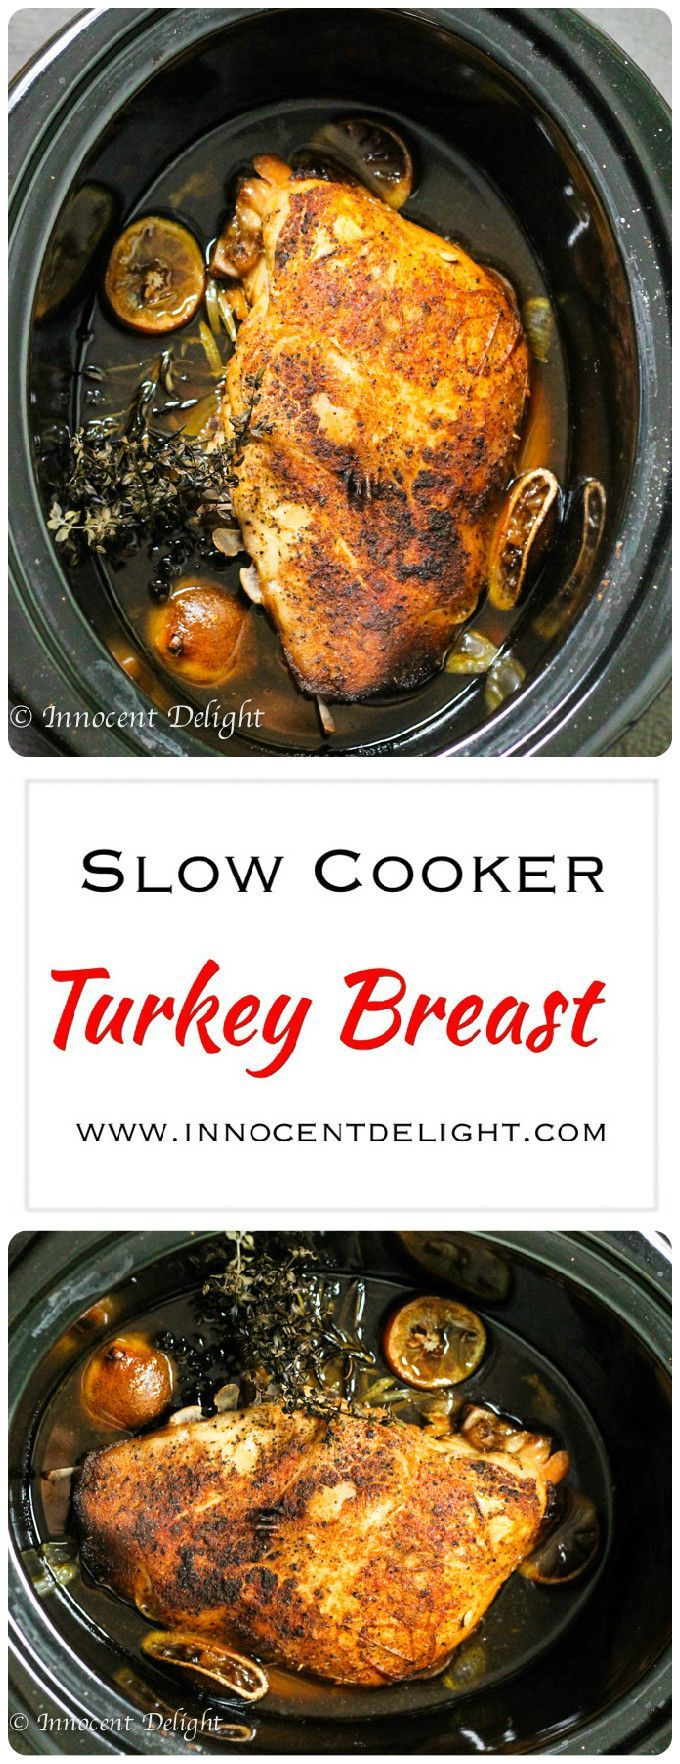 how to cook a 7lb turkey breast in the crock pot